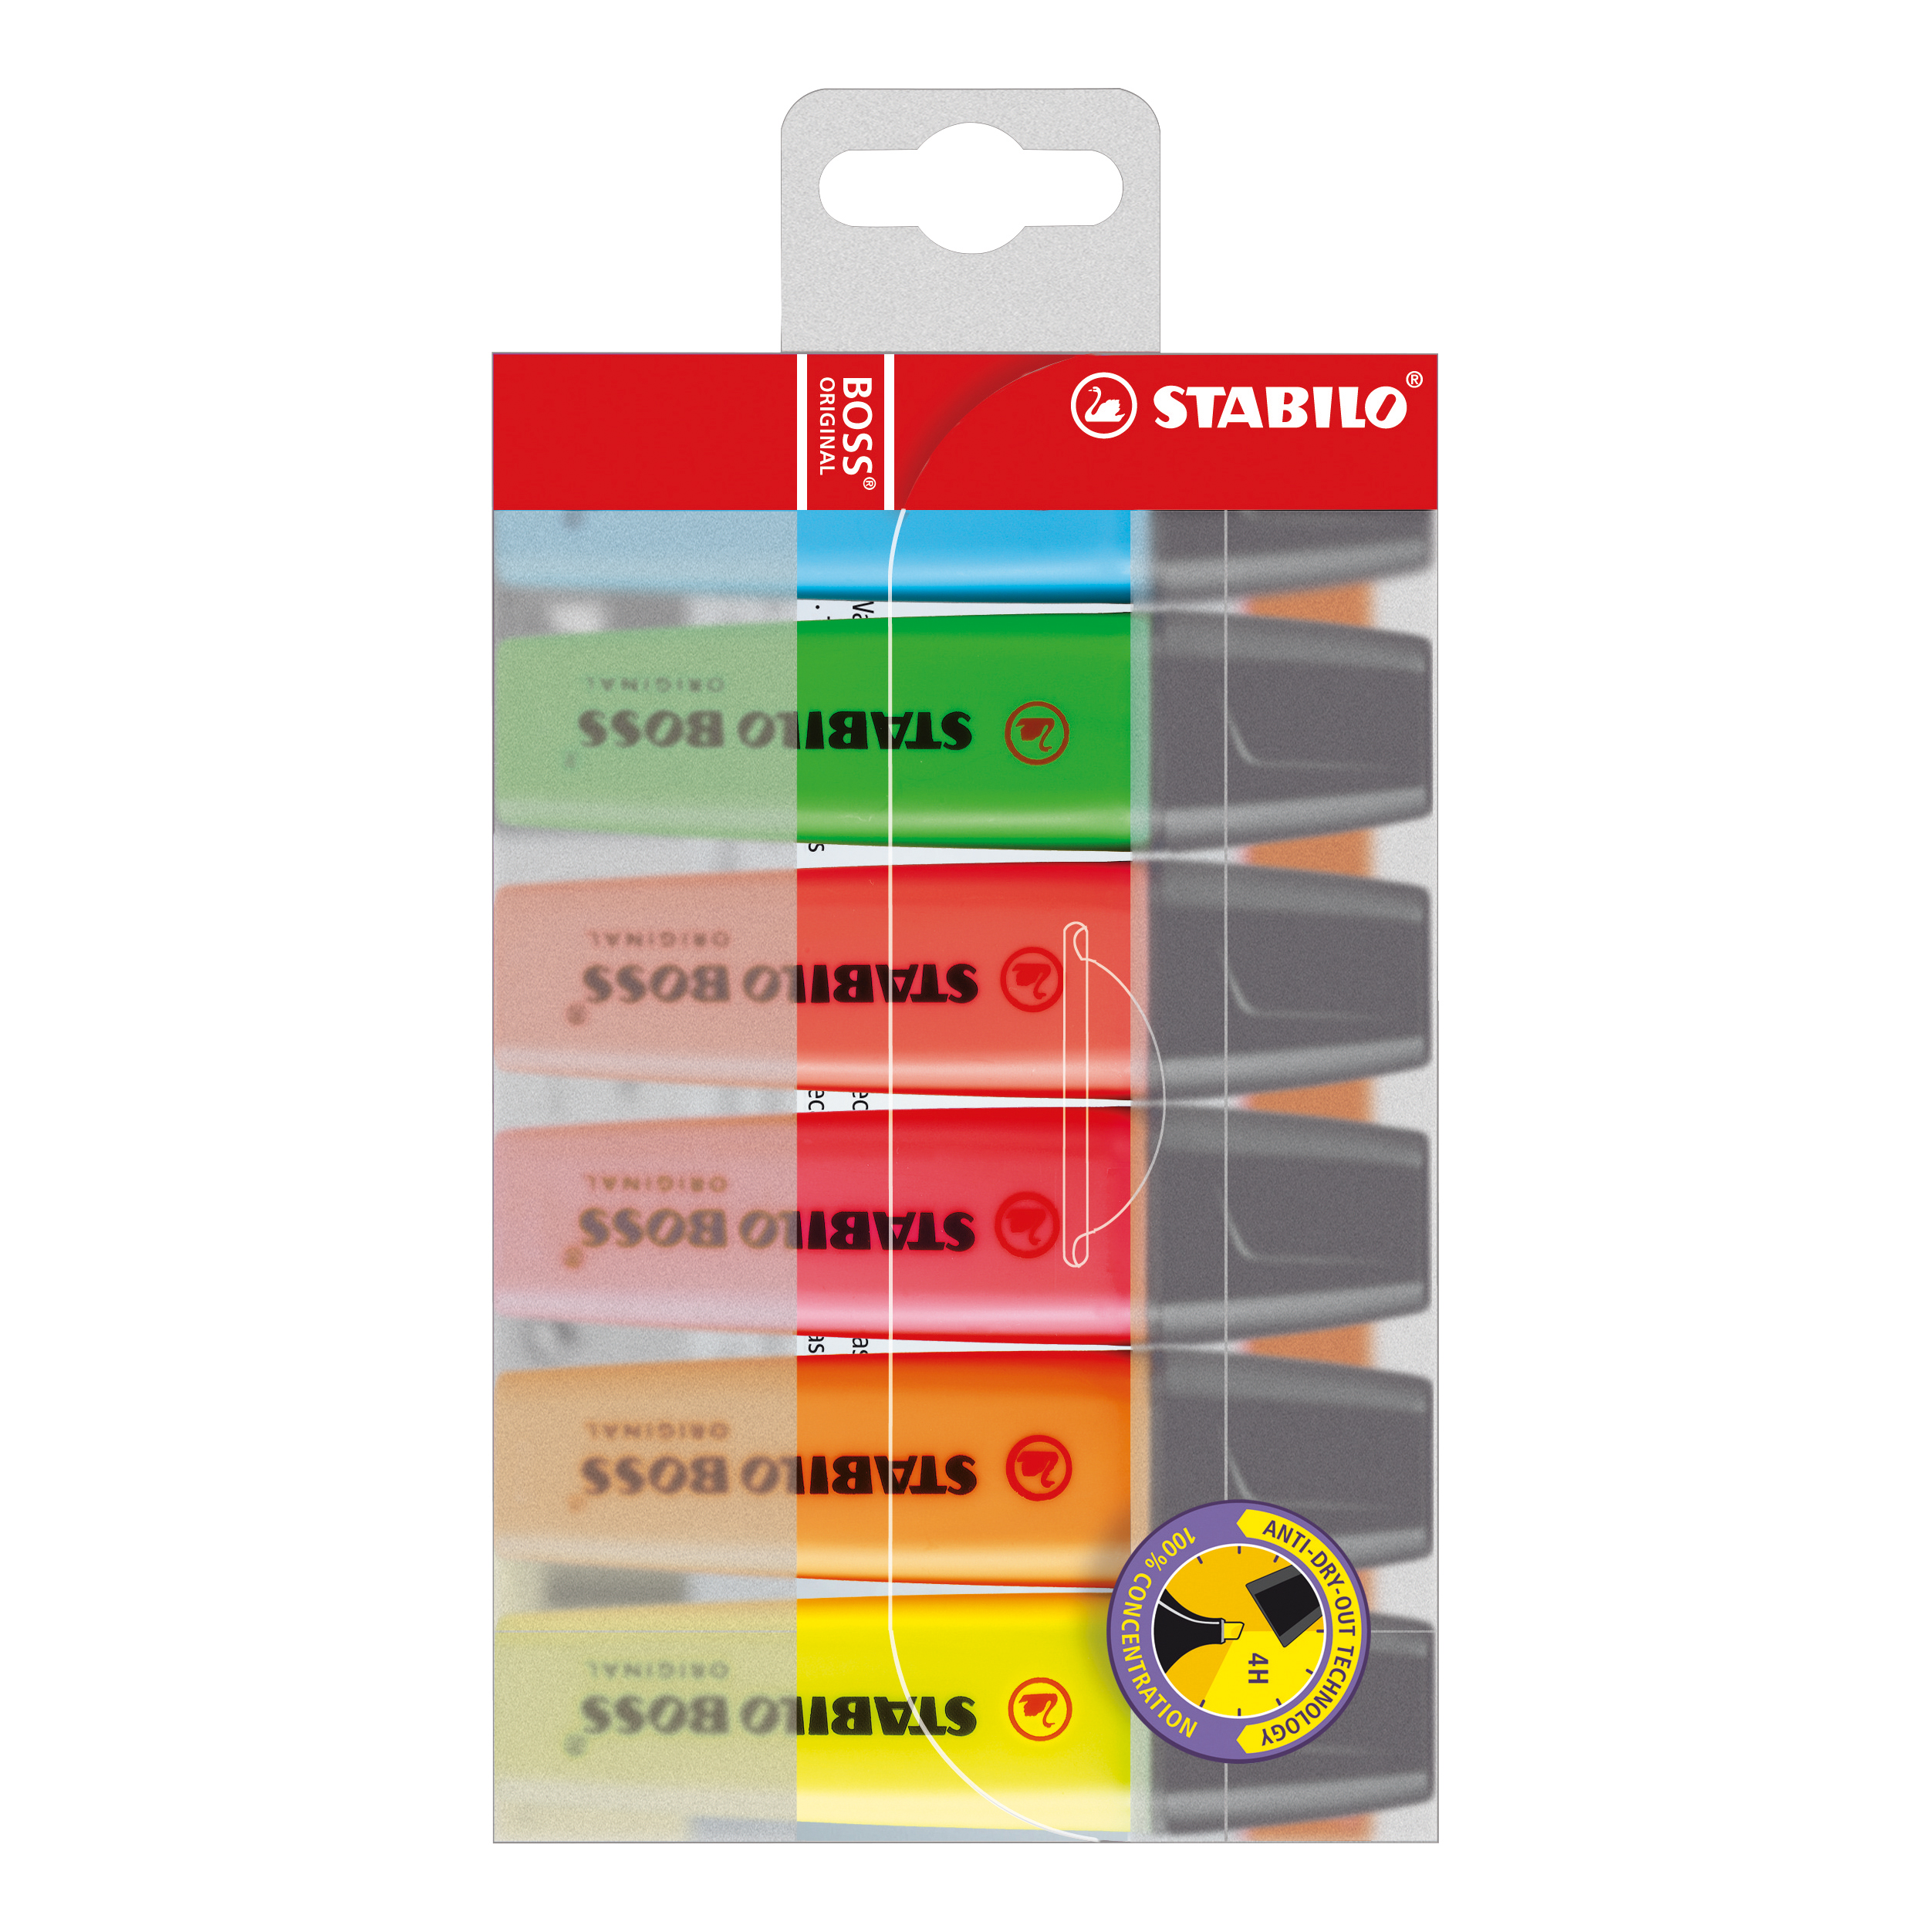 Stabilo Boss Highlighters Chisel Tip 2-5mm Line Wallet Assorted Ref 70/6 Pack 6